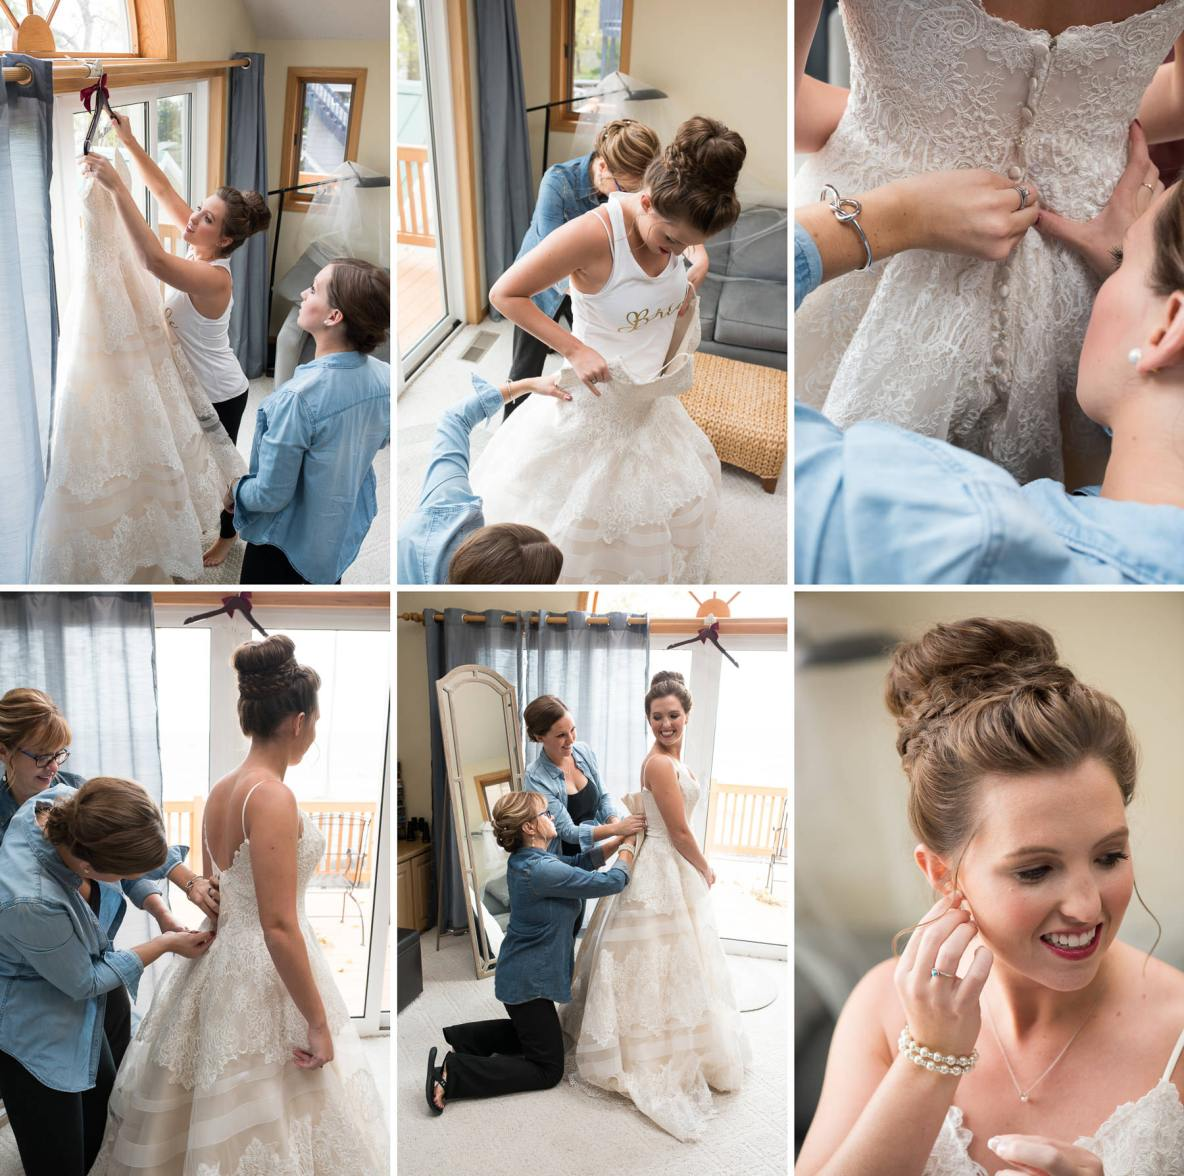 Bride gets dress fastened by bridesmaids.